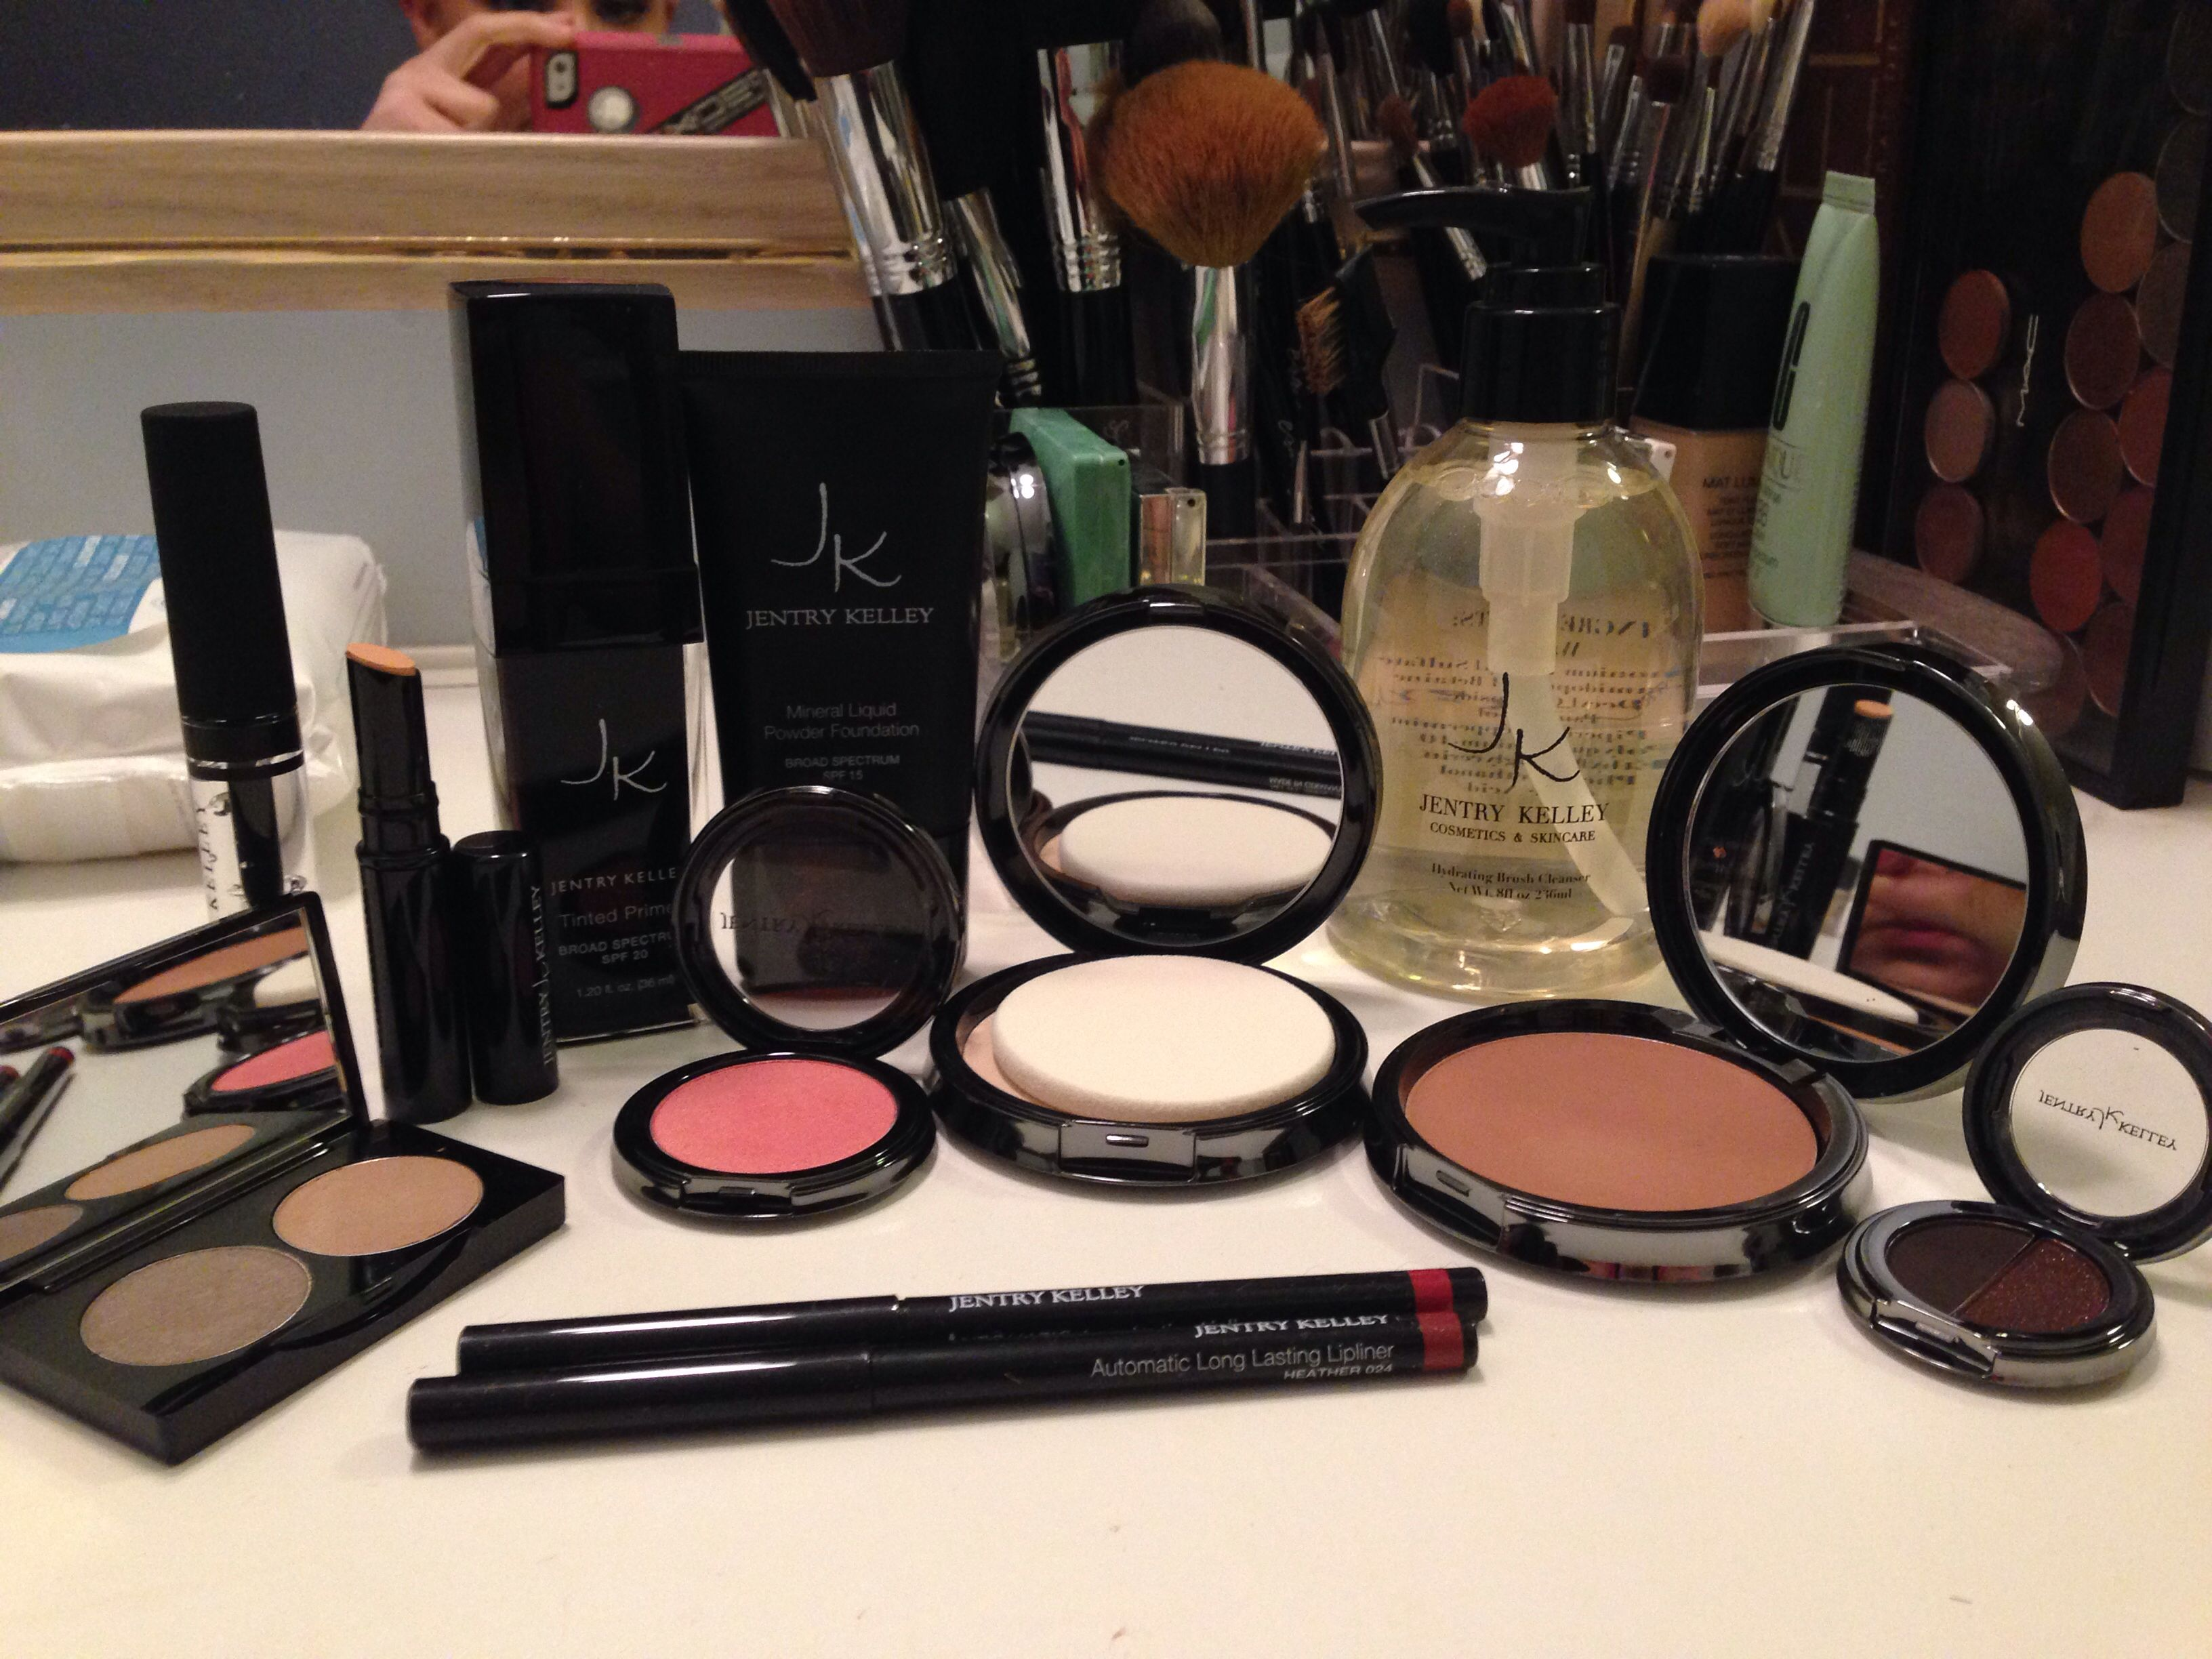 Amazing makeup line! New to me, but Jentry Kelley's makeup